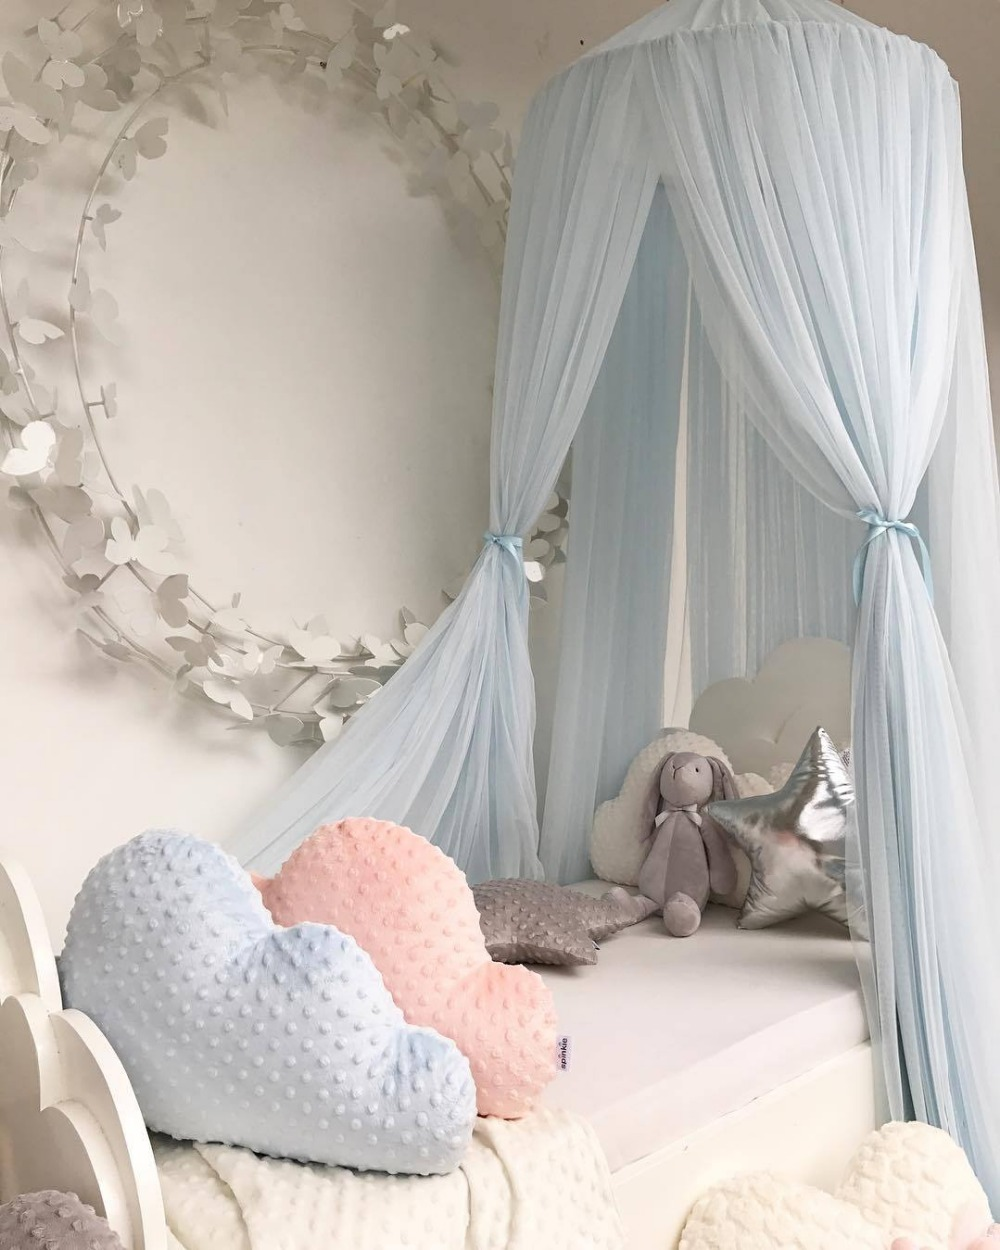 Luxury Kids Baby Bedding Round Dome Bed Cotton Canopy Netting Bedcover Mosquito Net Curtain Play Tent For Children mosquito nets curtain for bedding set princess bed canopy bed netting tent